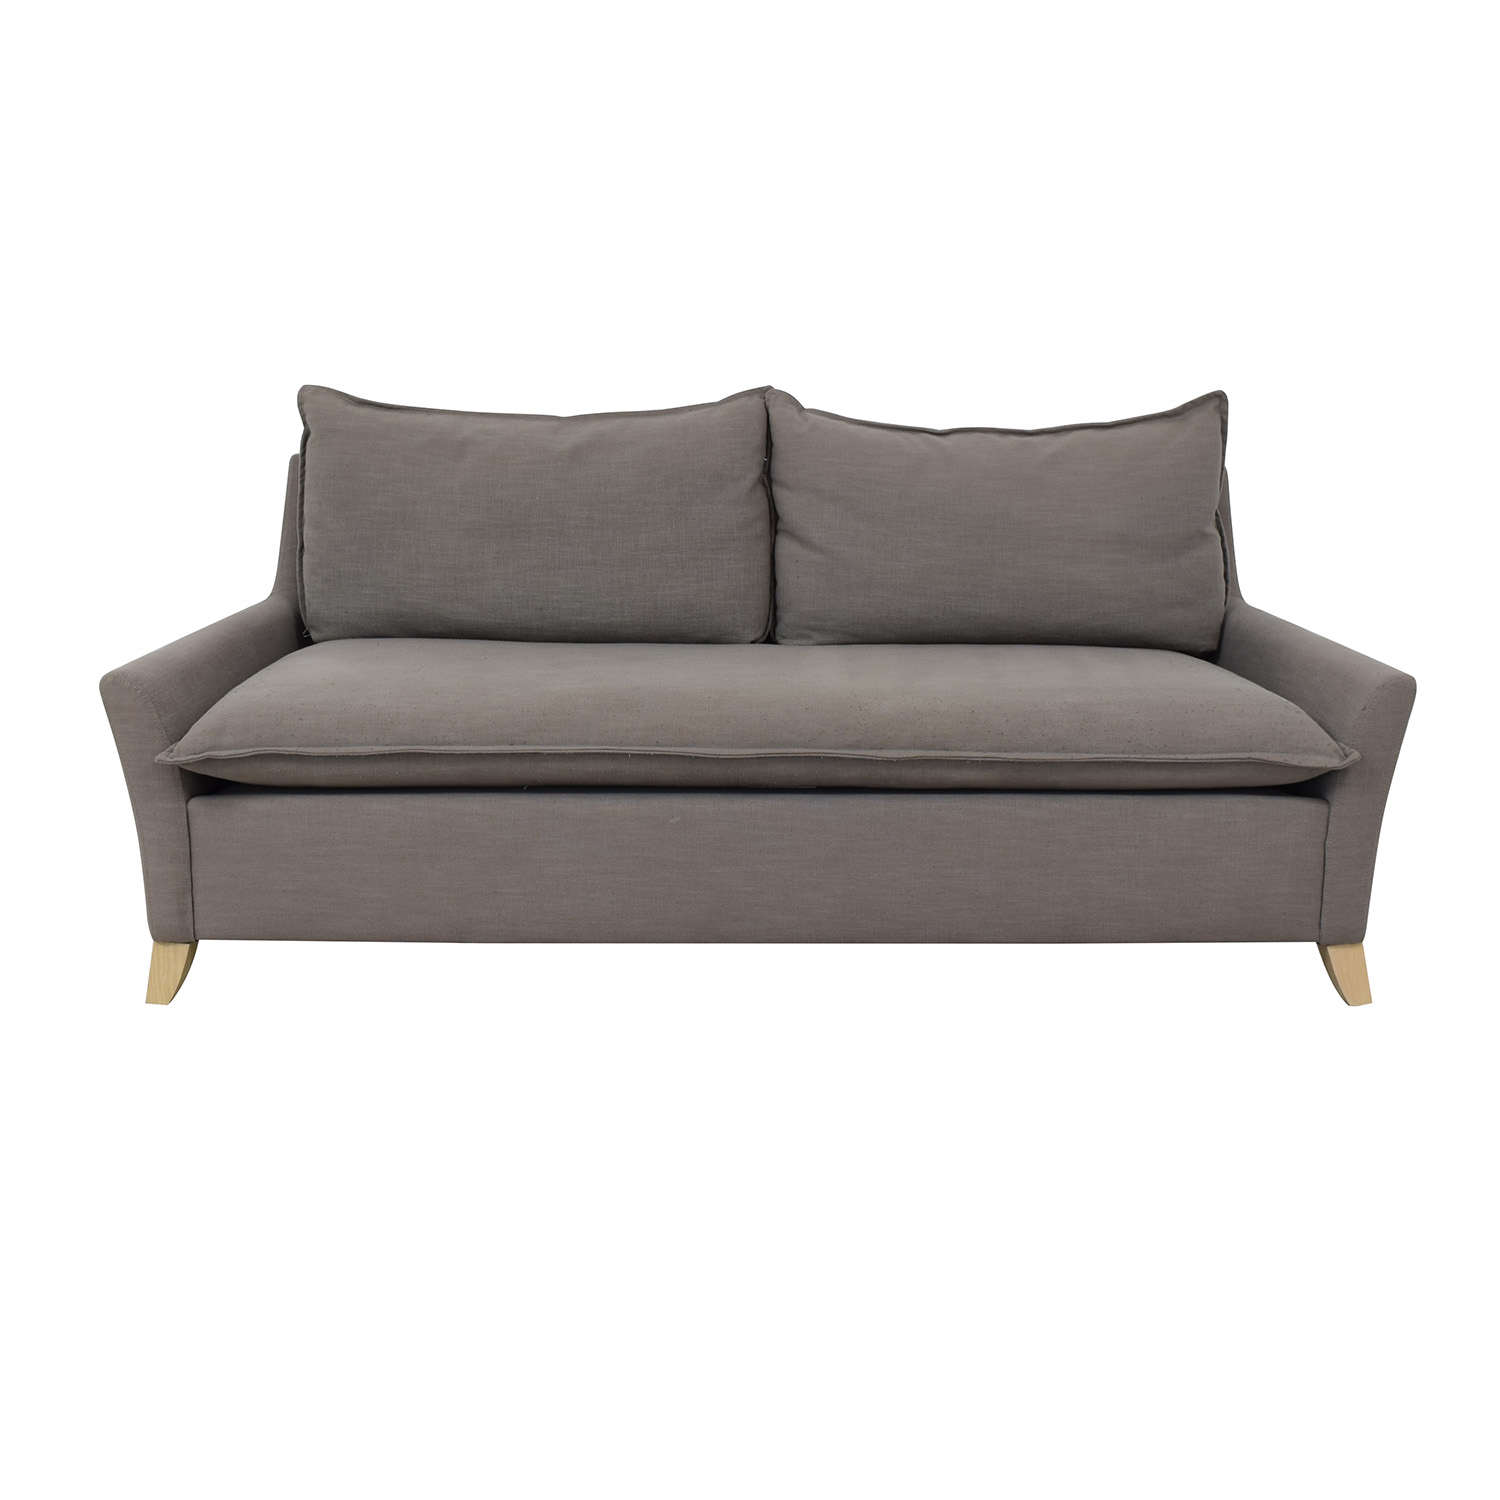 West Elm West Elm Bliss Sofa used